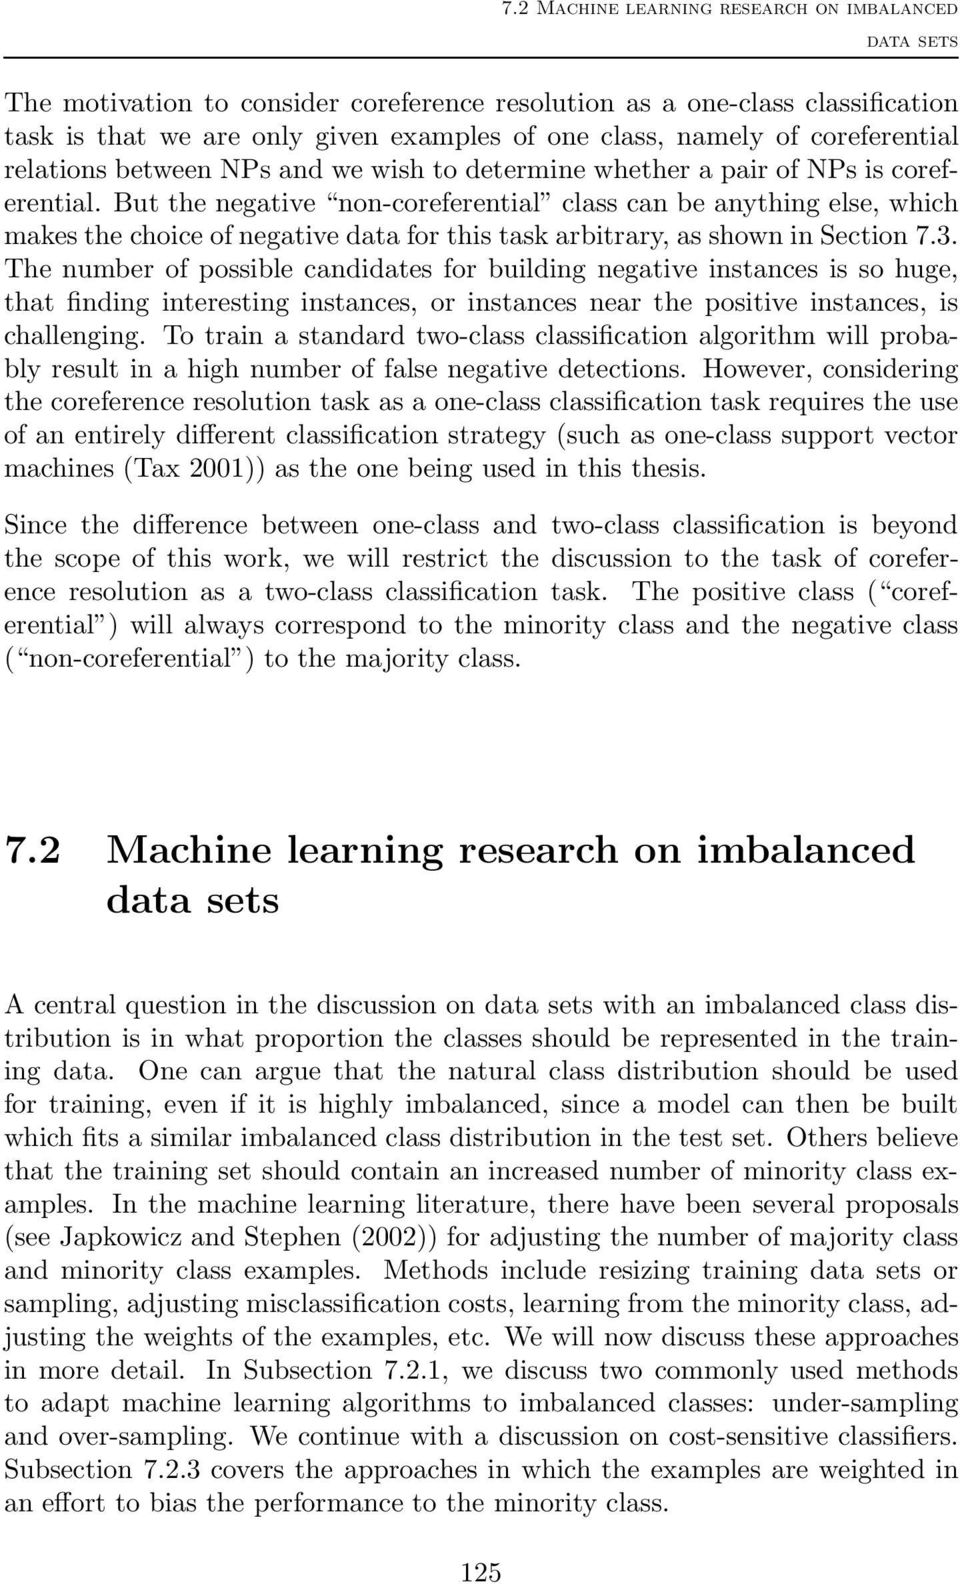 CHAPTER 7  The problem of imbalanced data sets - PDF